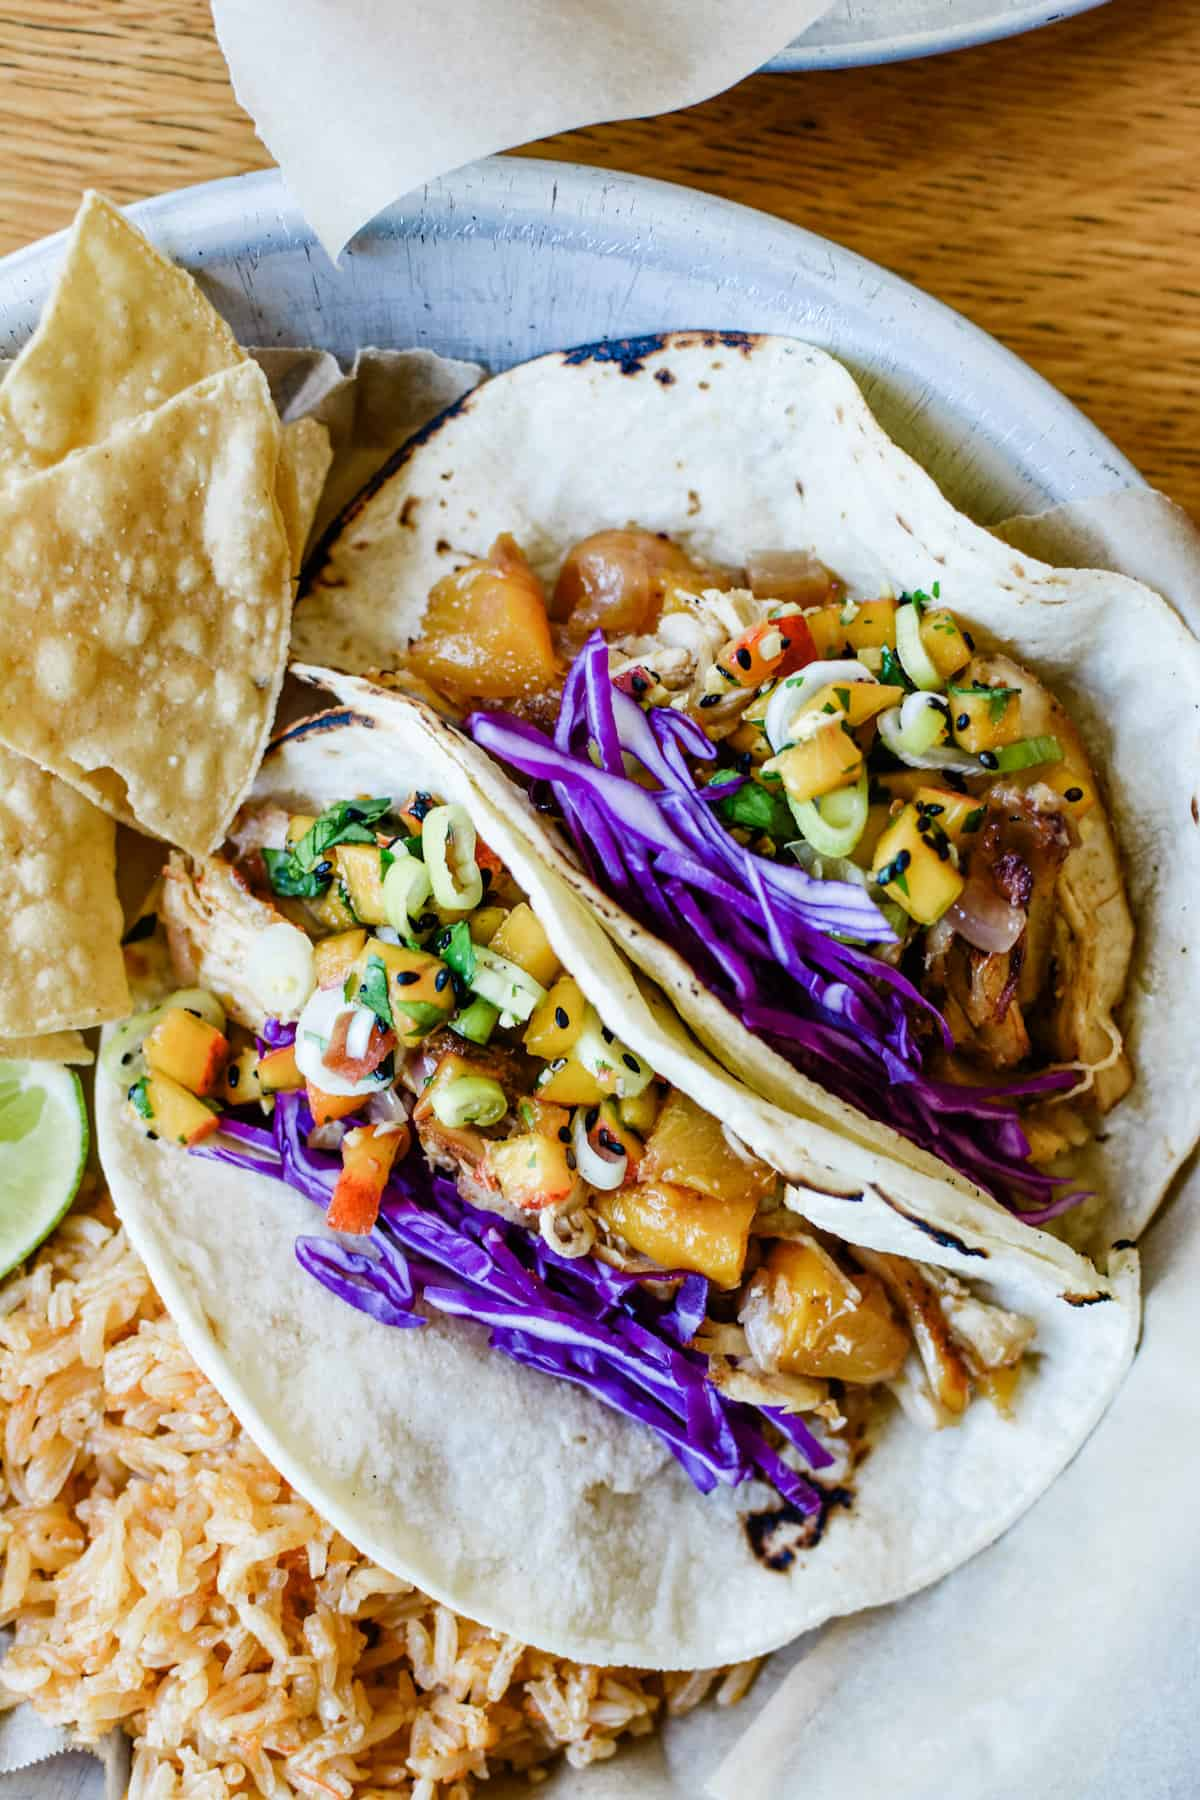 Fresh peaches simmer with chicken in the Instant Pot in mere minutes and then quickly fry in the Air Fryer for crisp edges. Serve with a peach-ginger salsa! #tacos #chickencarnitas #instantpot #peaches